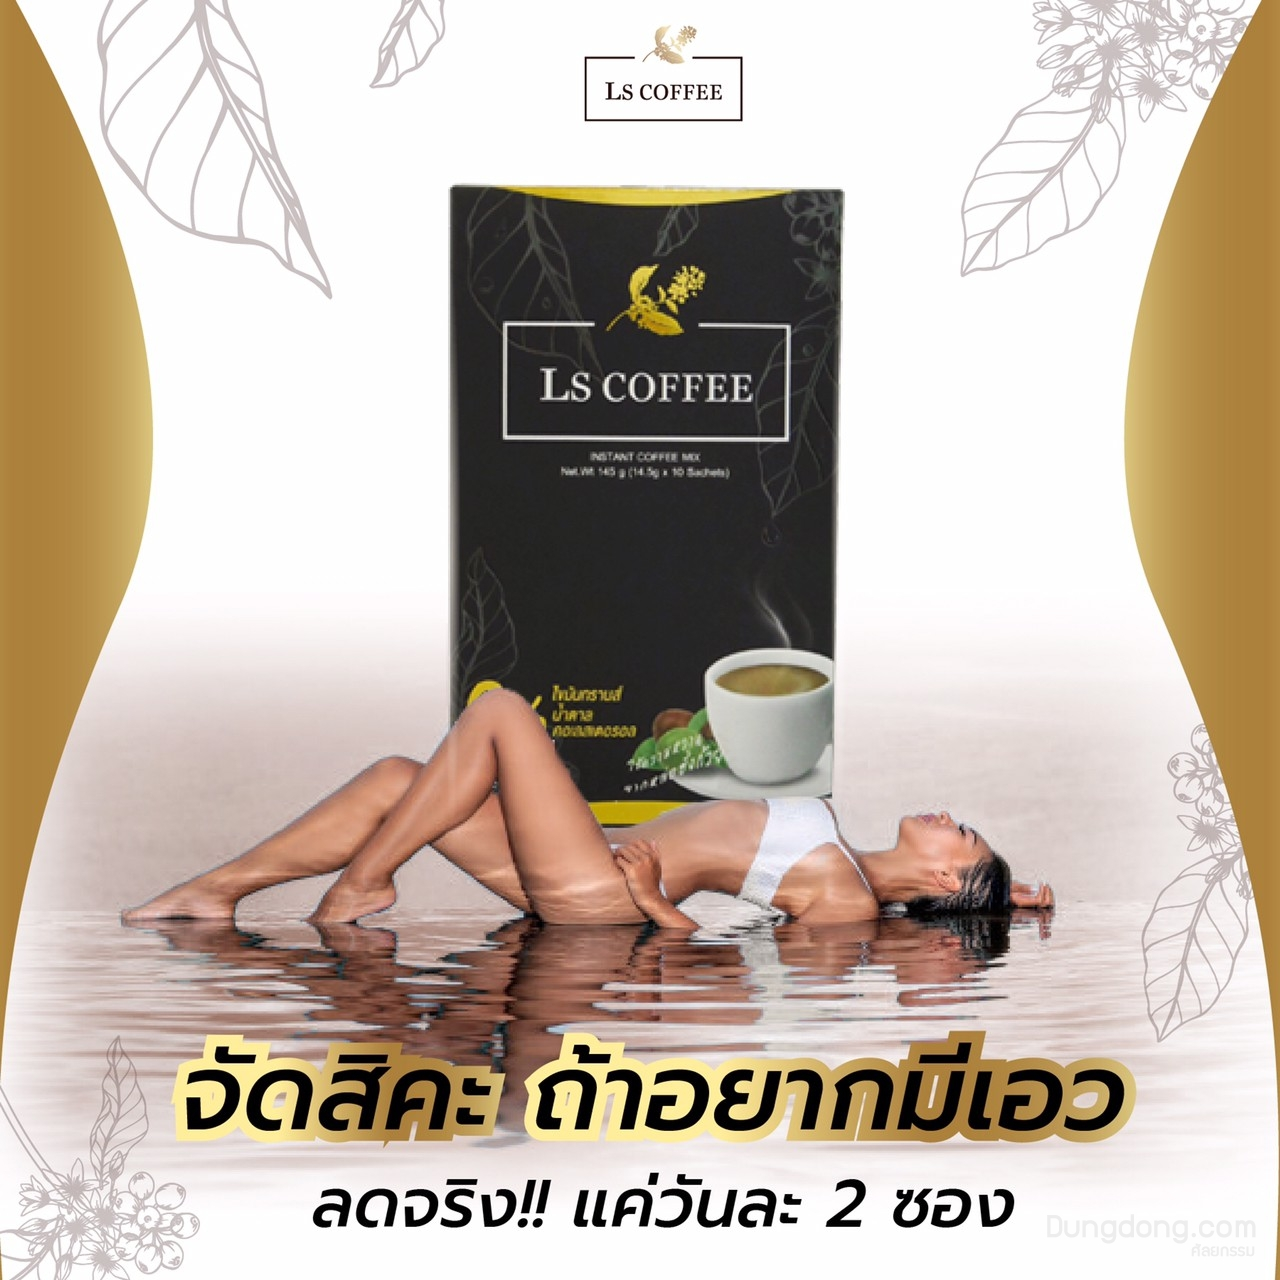 Ls coffee_๒๐๑๐๐๗_10.jpg